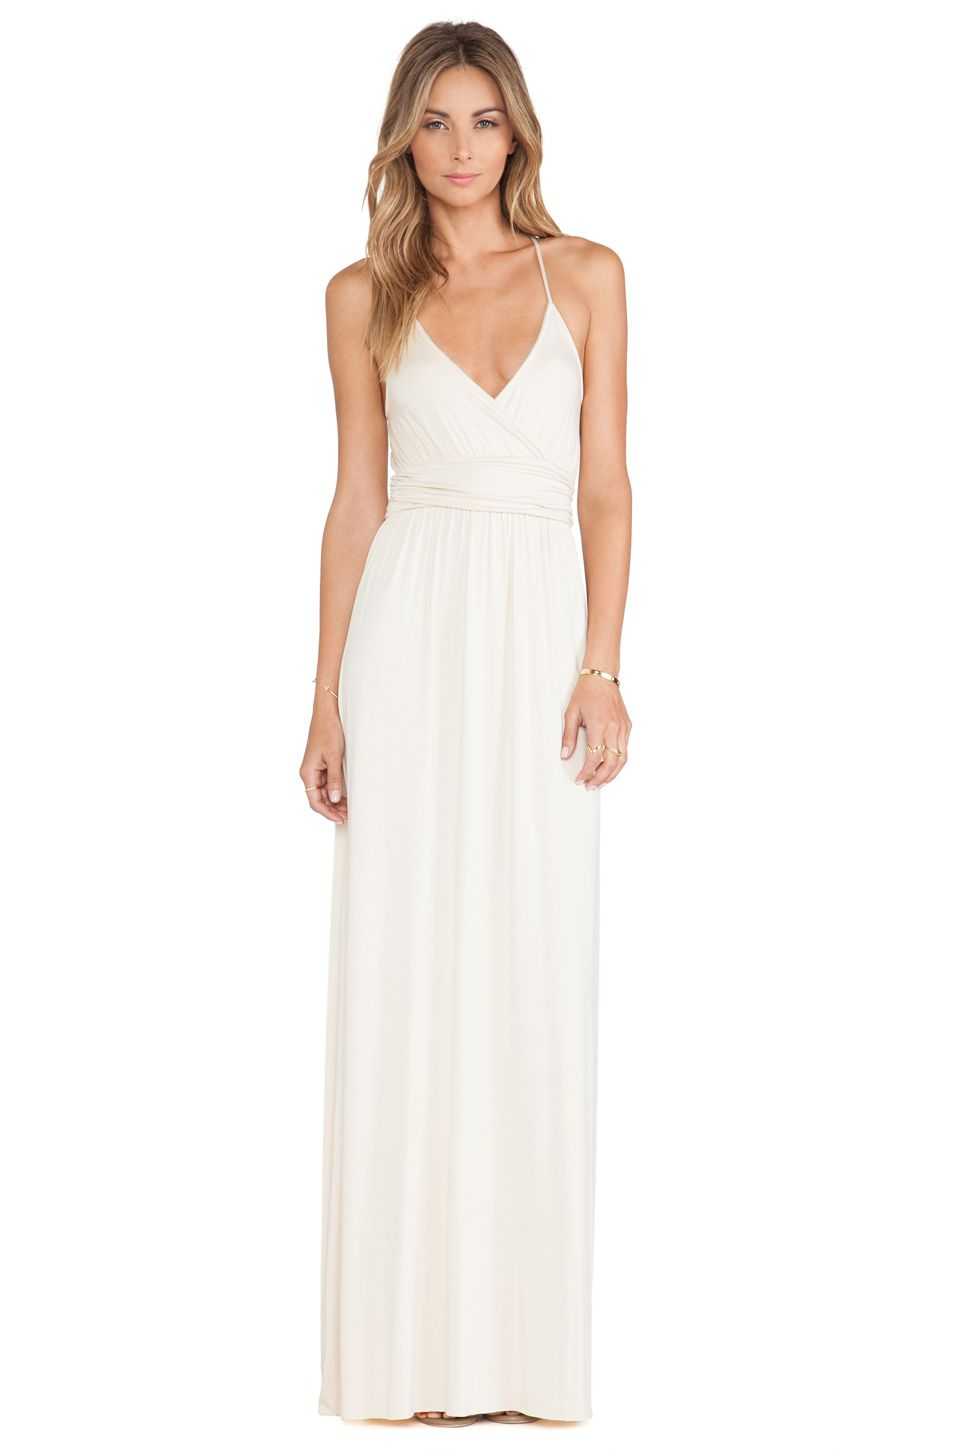 Rachel Pally Virginia Dress in Cream | REVOLVE